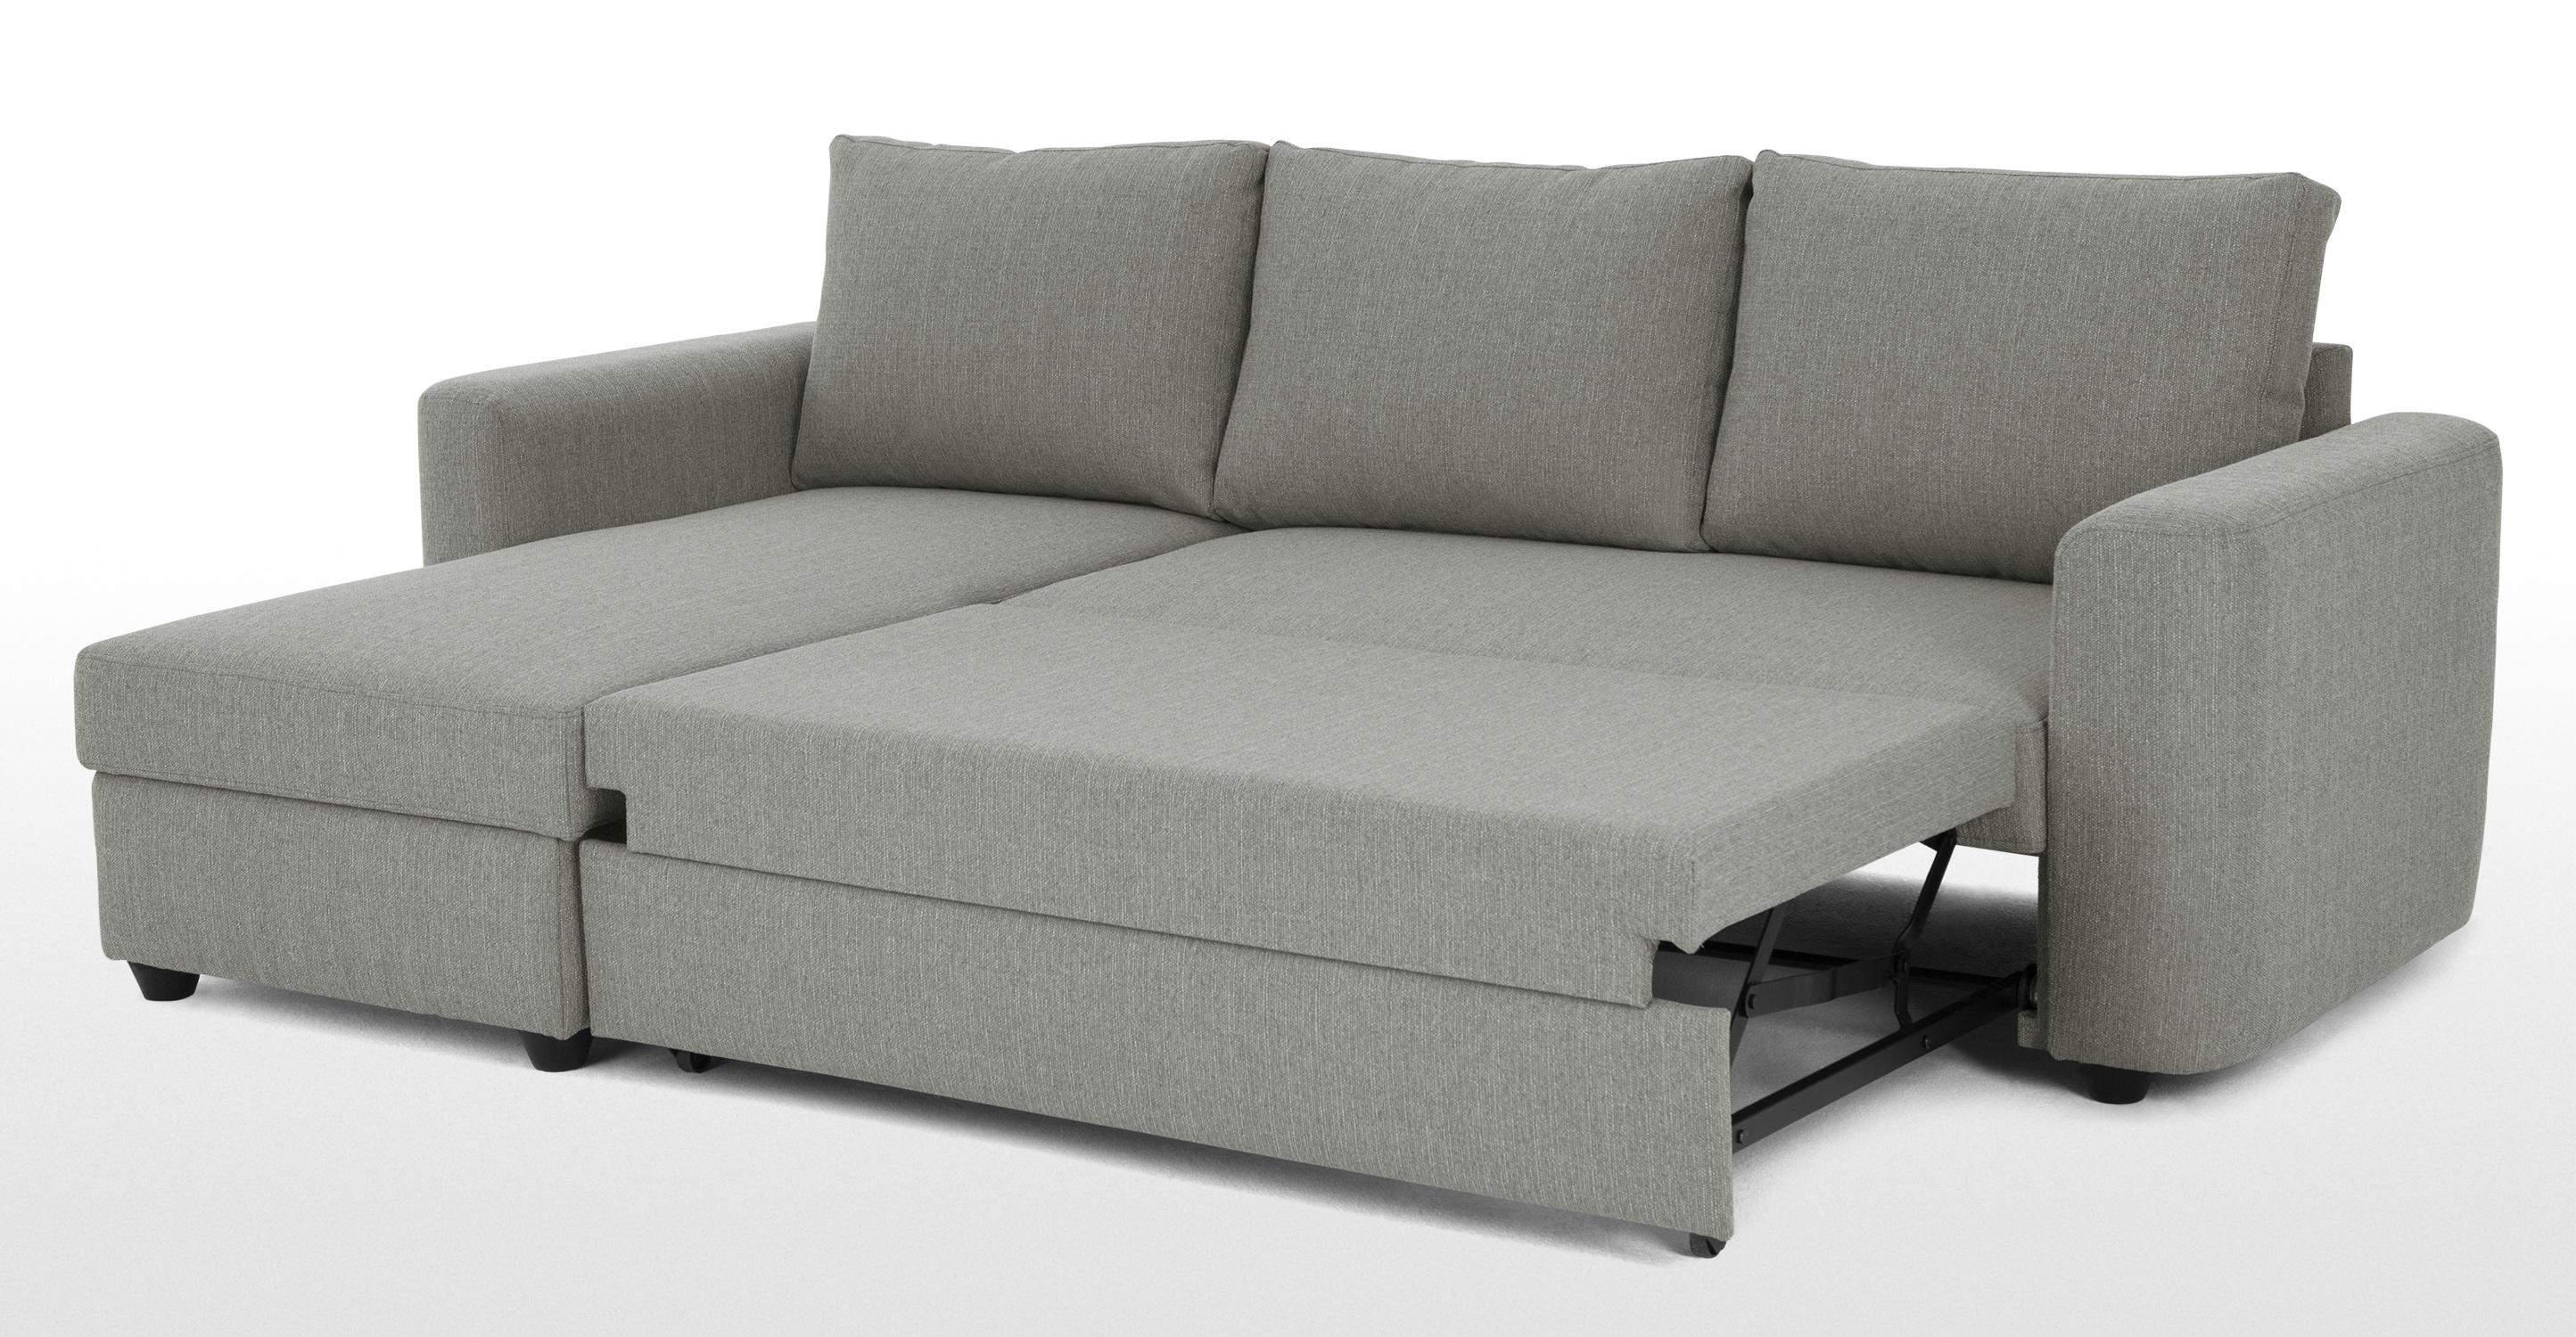 Sofas Center : 46 Unusual Corner Sofa Bed With Storage Picture Within Cheap Corner Sofa Beds (View 4 of 20)